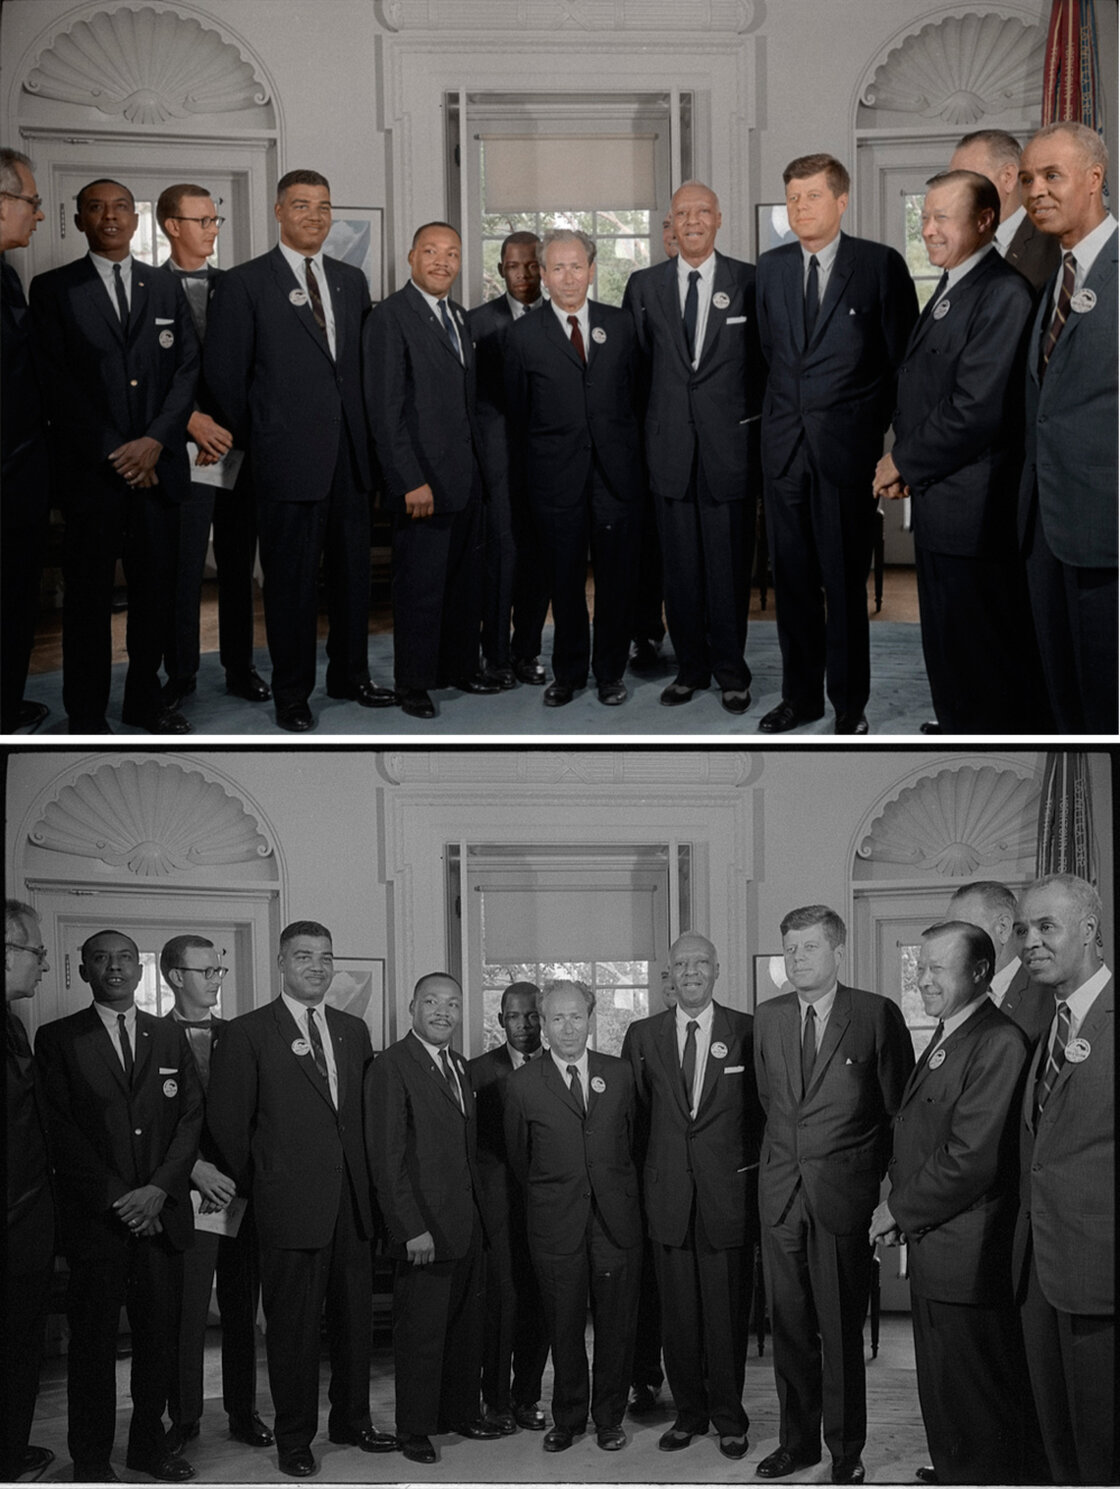 Civil rights leaders meet with President John F. Kennedy in the oval office of the White House after the March on Washington. Colorized by Mads Madsen.